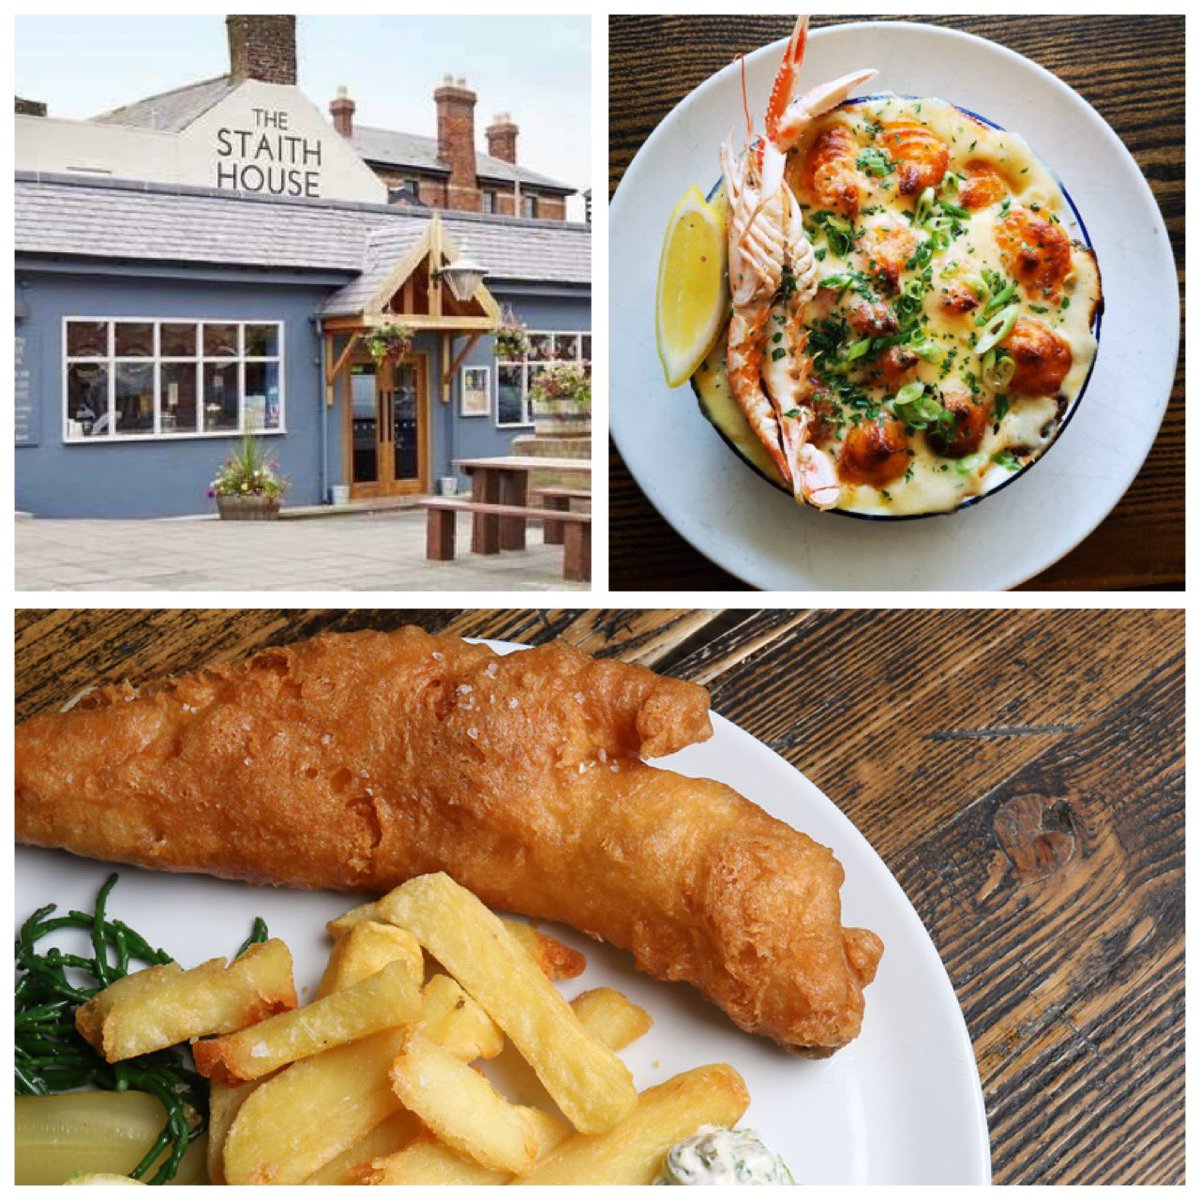 Comfort food & a warm welcome awaits this Saturday @Top50Gastropubs @MichelinGuideUK @GoodFoodGuideUK #nefollowers #northeastfoodpic.twitter.com/j852R8KvQN